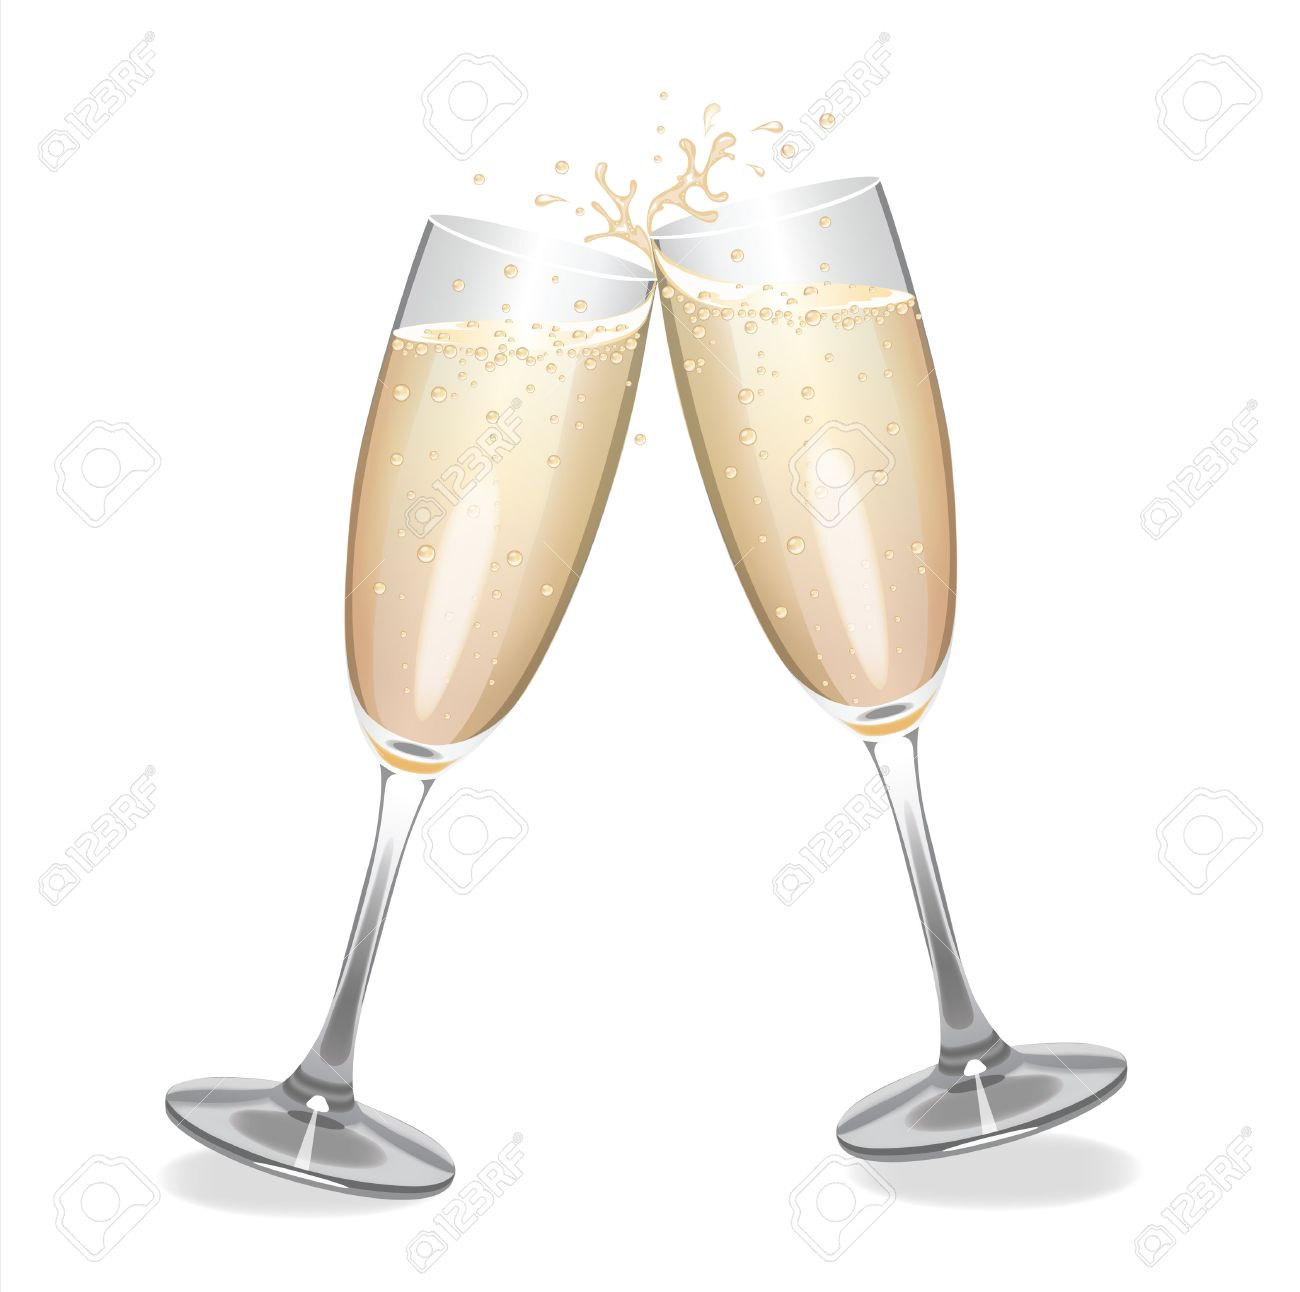 champagne glasses clinking together royalty free cliparts vectors